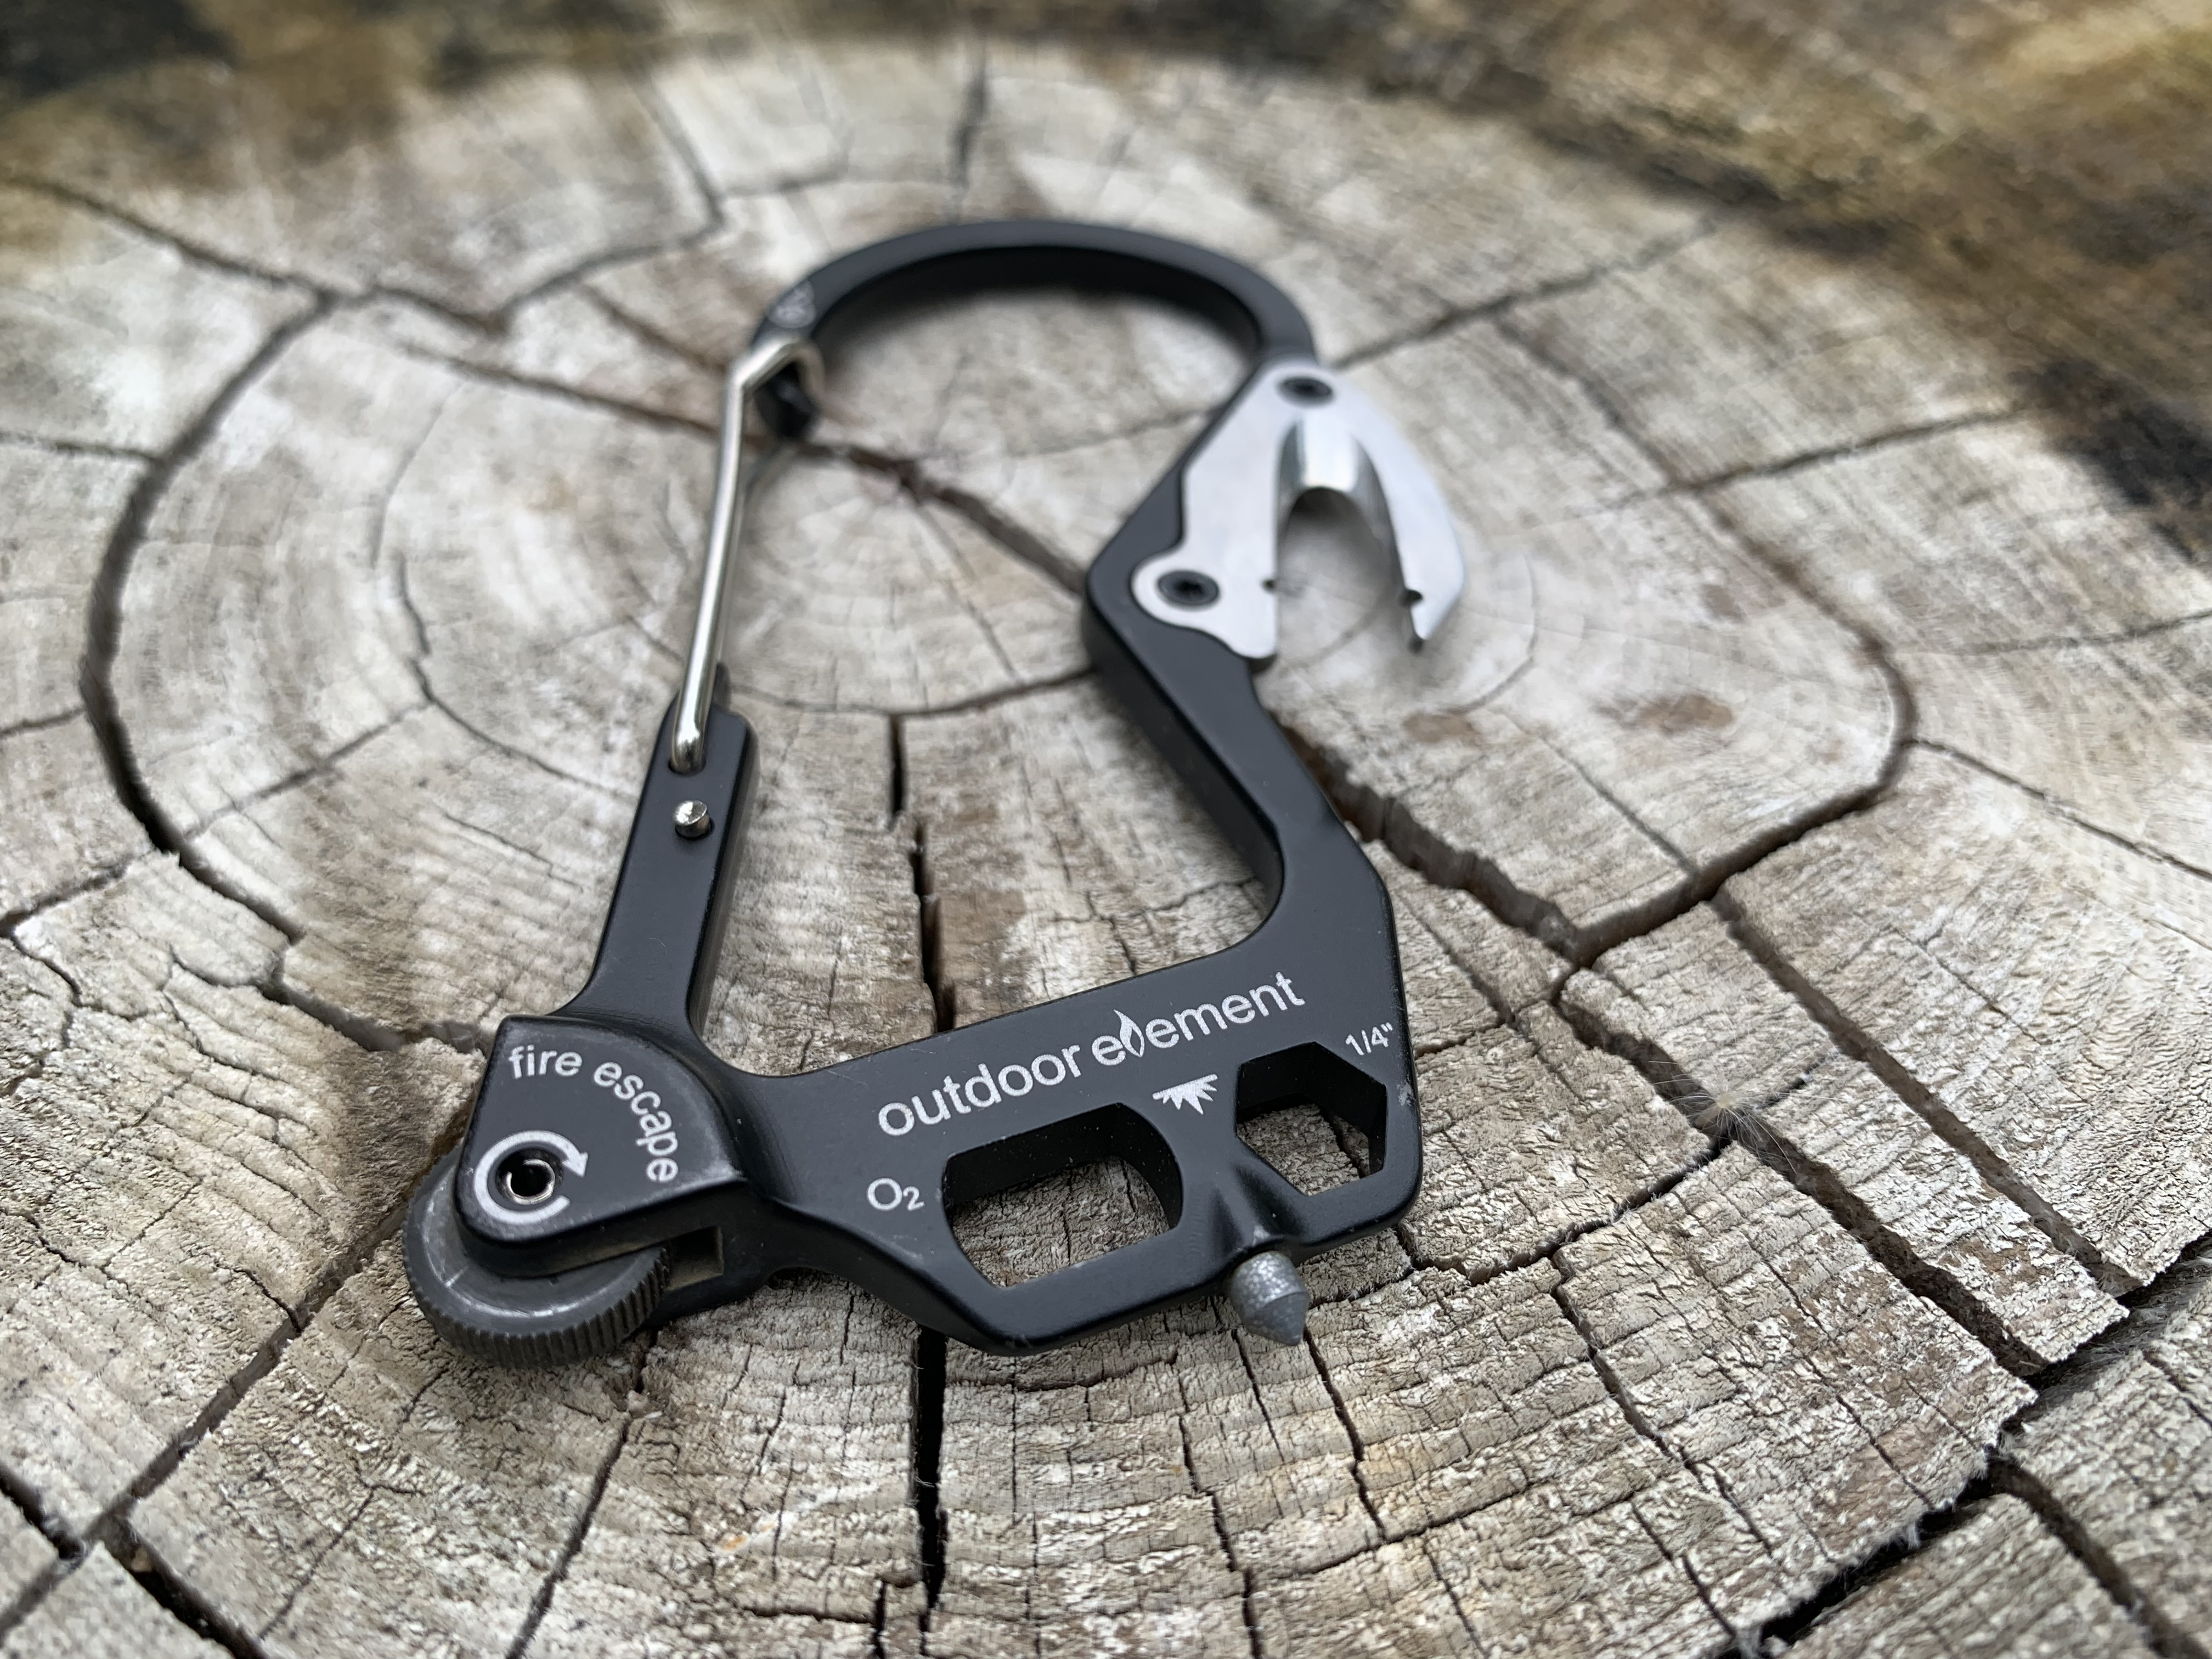 Carabiner multi-tool is made to start fires and perform rescues